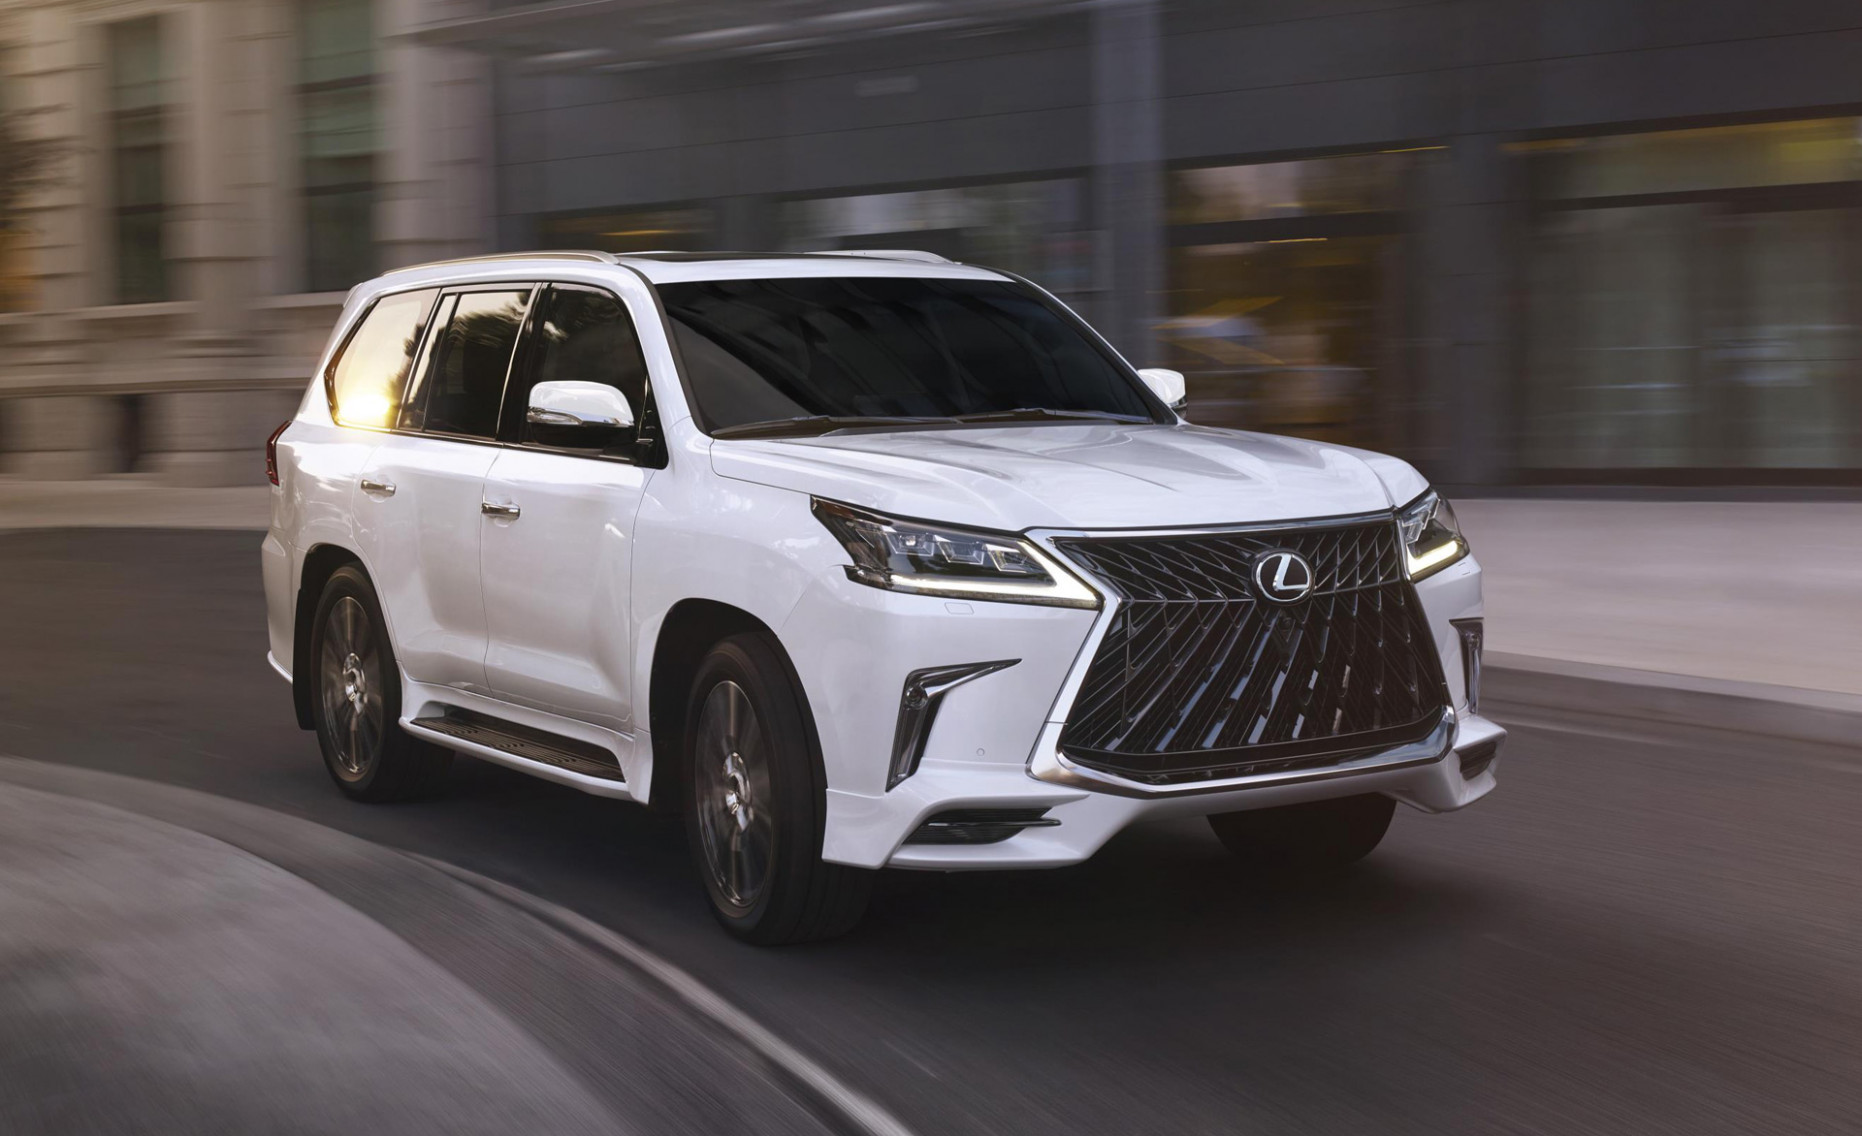 7 Lexus LX Review, Ratings, Specs, Prices, and Photos - The Car ...